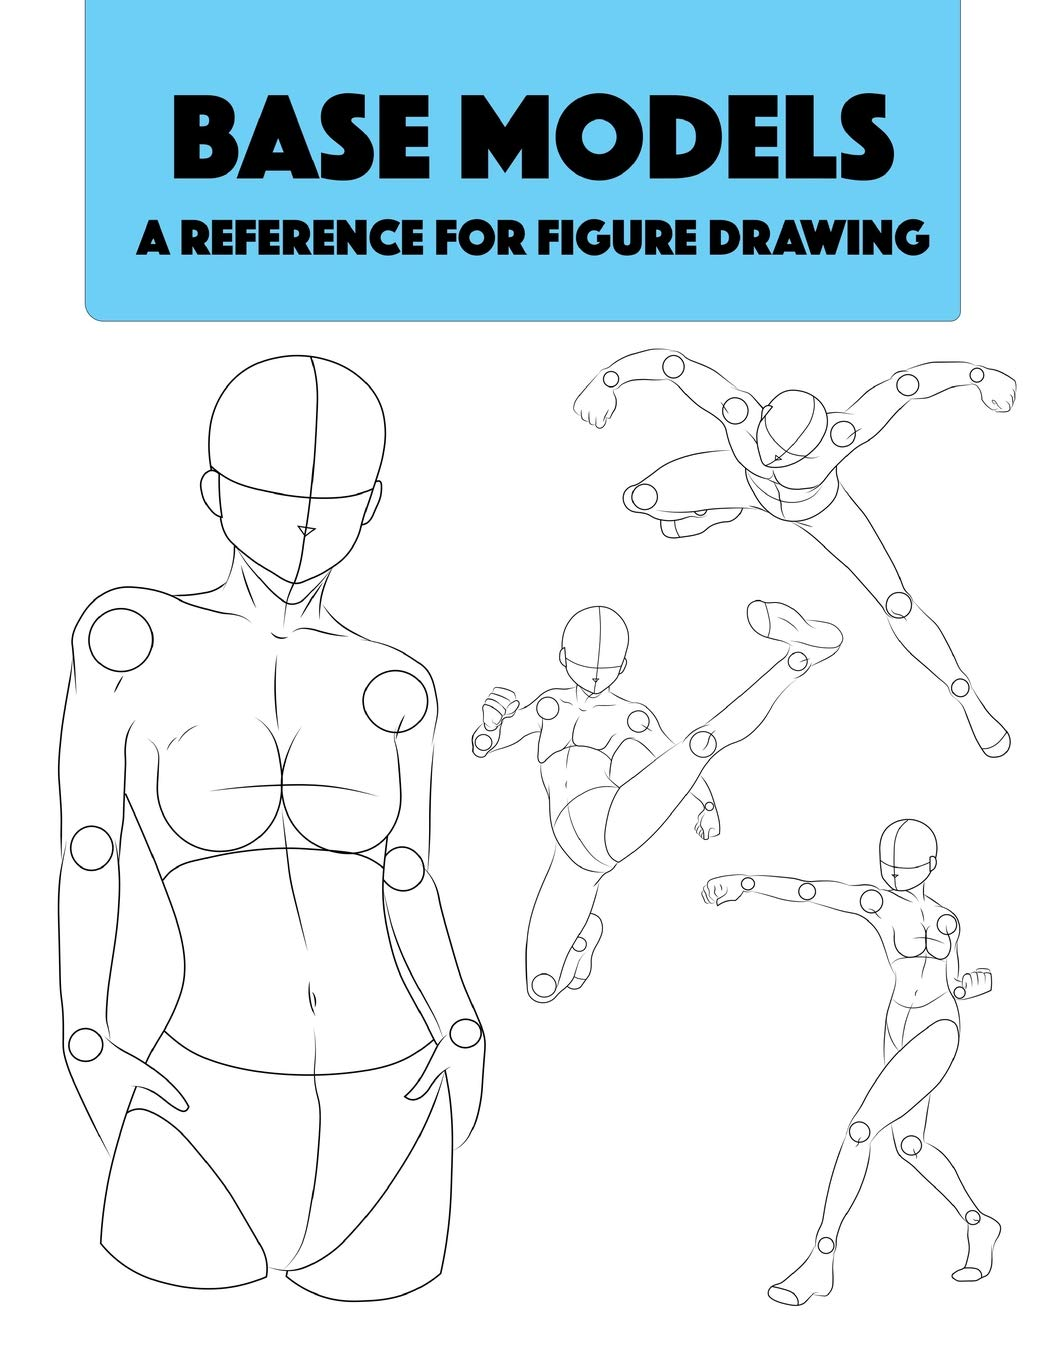 Base Models A Reference For Figure Drawing Detailed Professional Reference For Figure Drawing World Renowned Student Guide Dolan Joe 9781535186674 Amazon Com Books If any keywords or ideas come to mind, write them down. base models a reference for figure